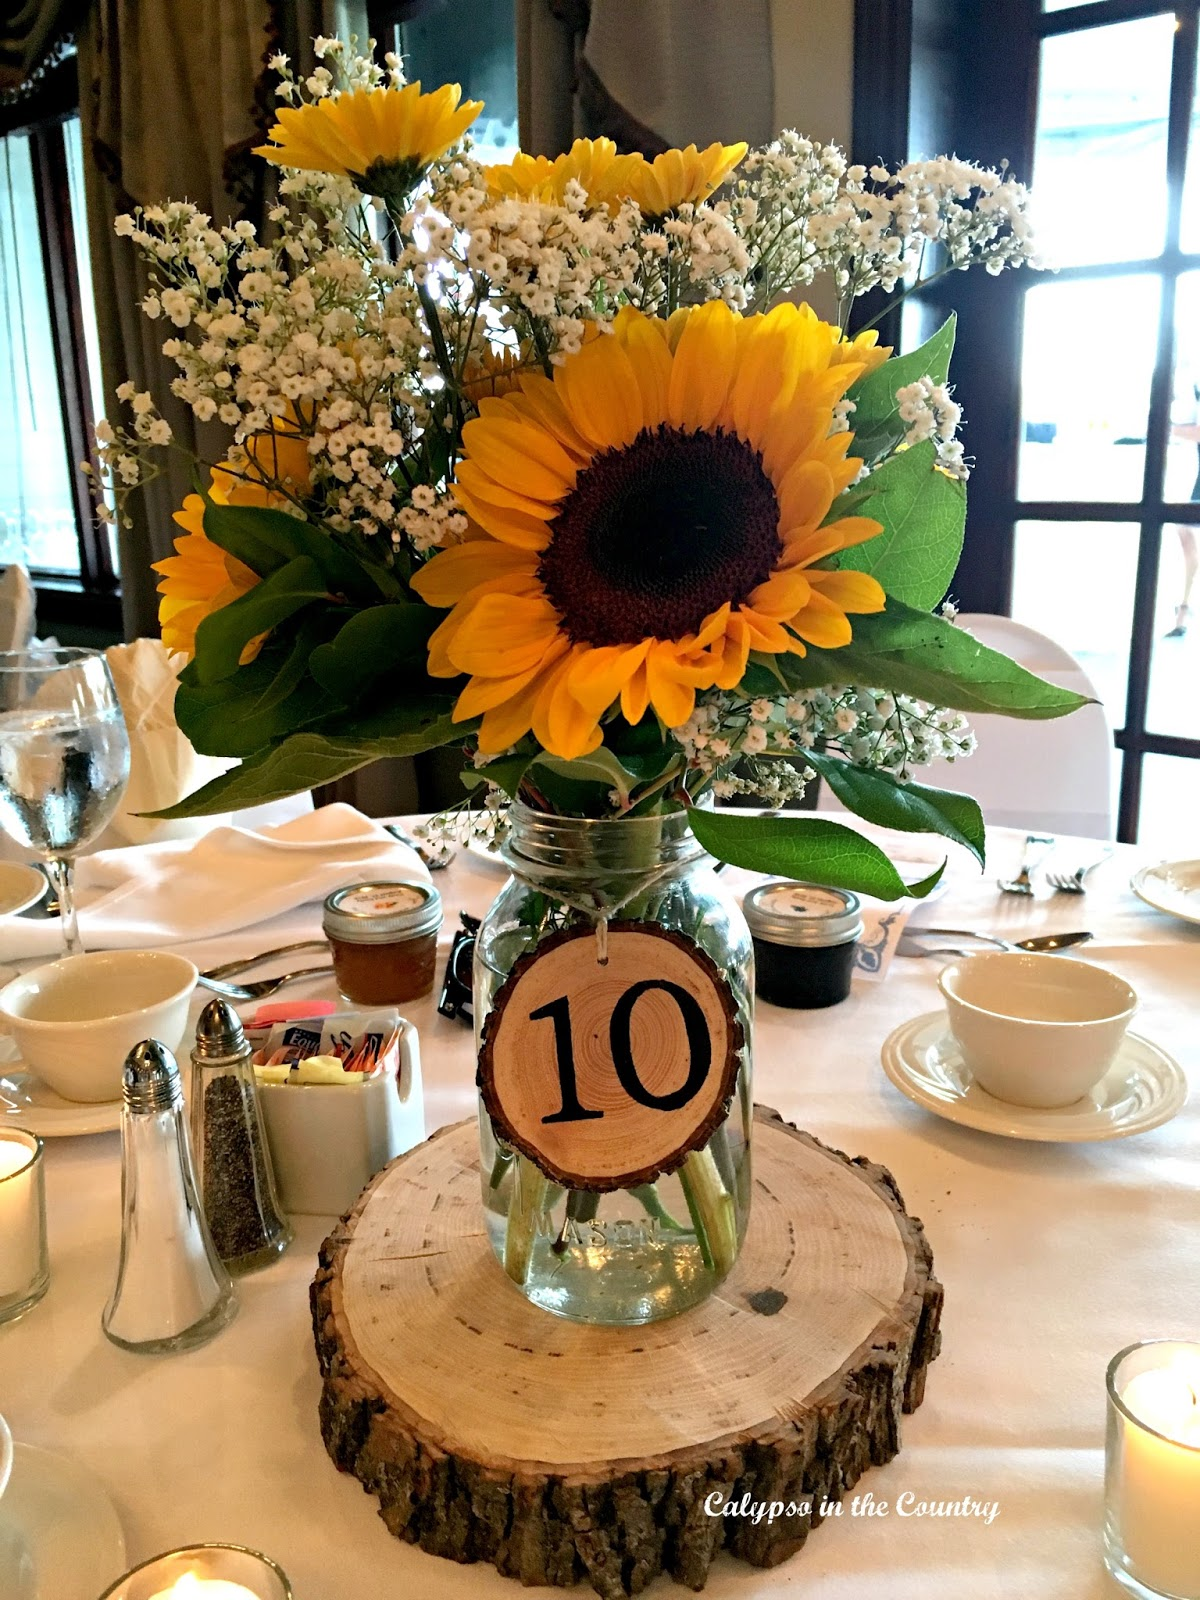 Sunflowers Centerpiece at a country themed wedding.